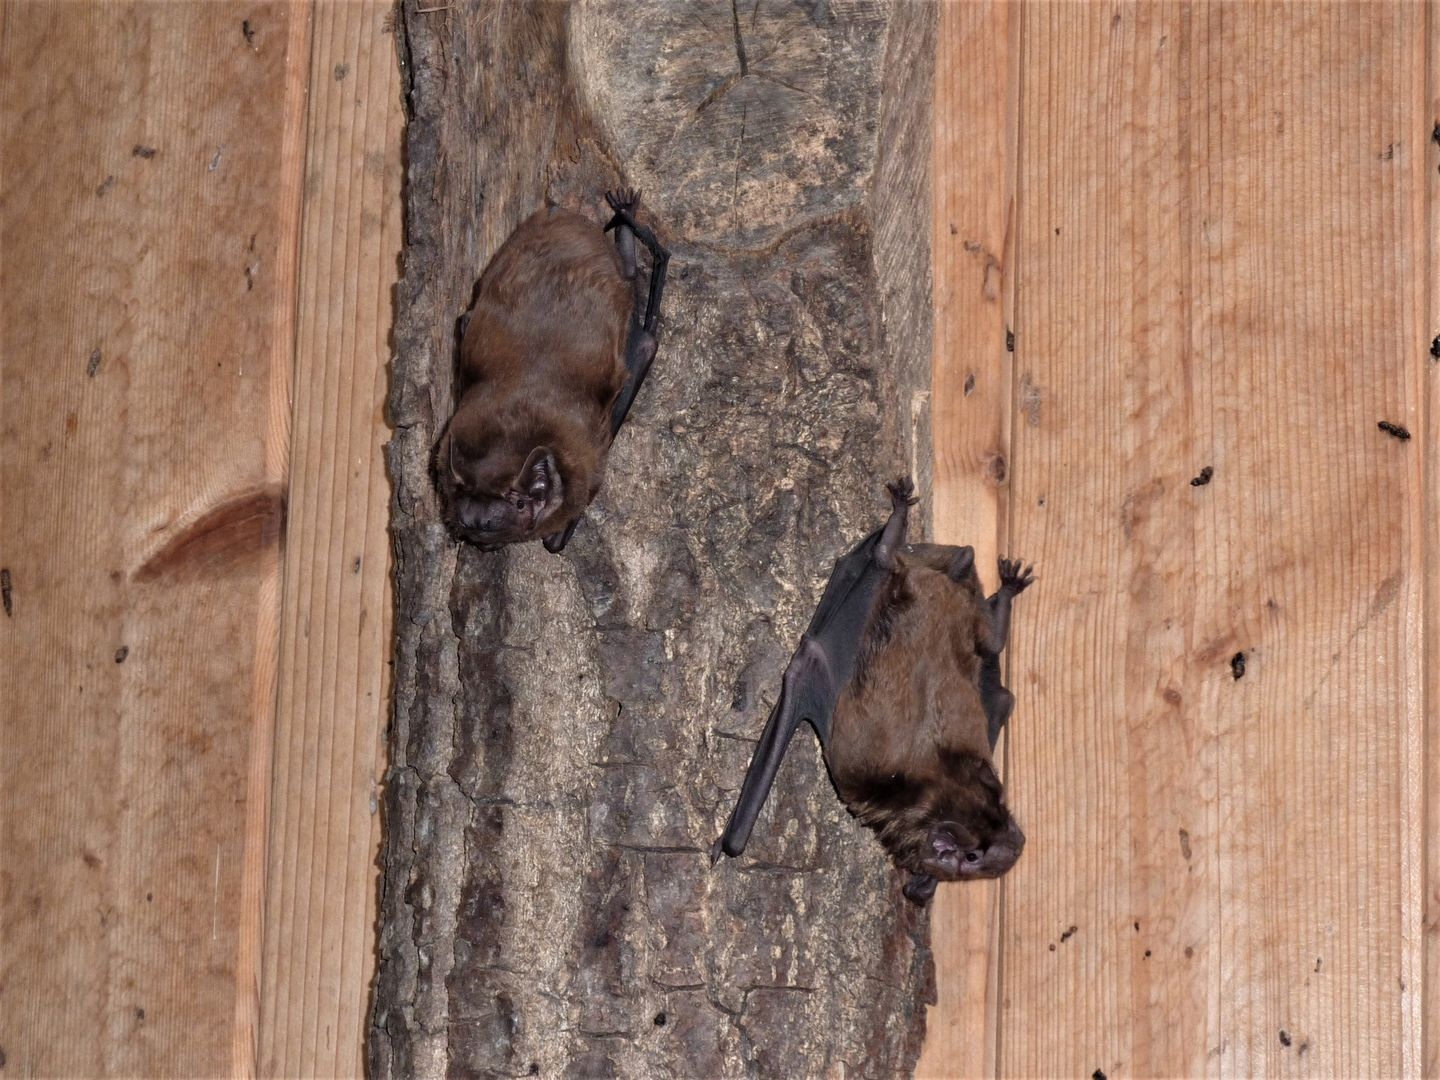 das Foto zeigt zwei Große Abendsegler // the photo shows two Nyctalus noctula